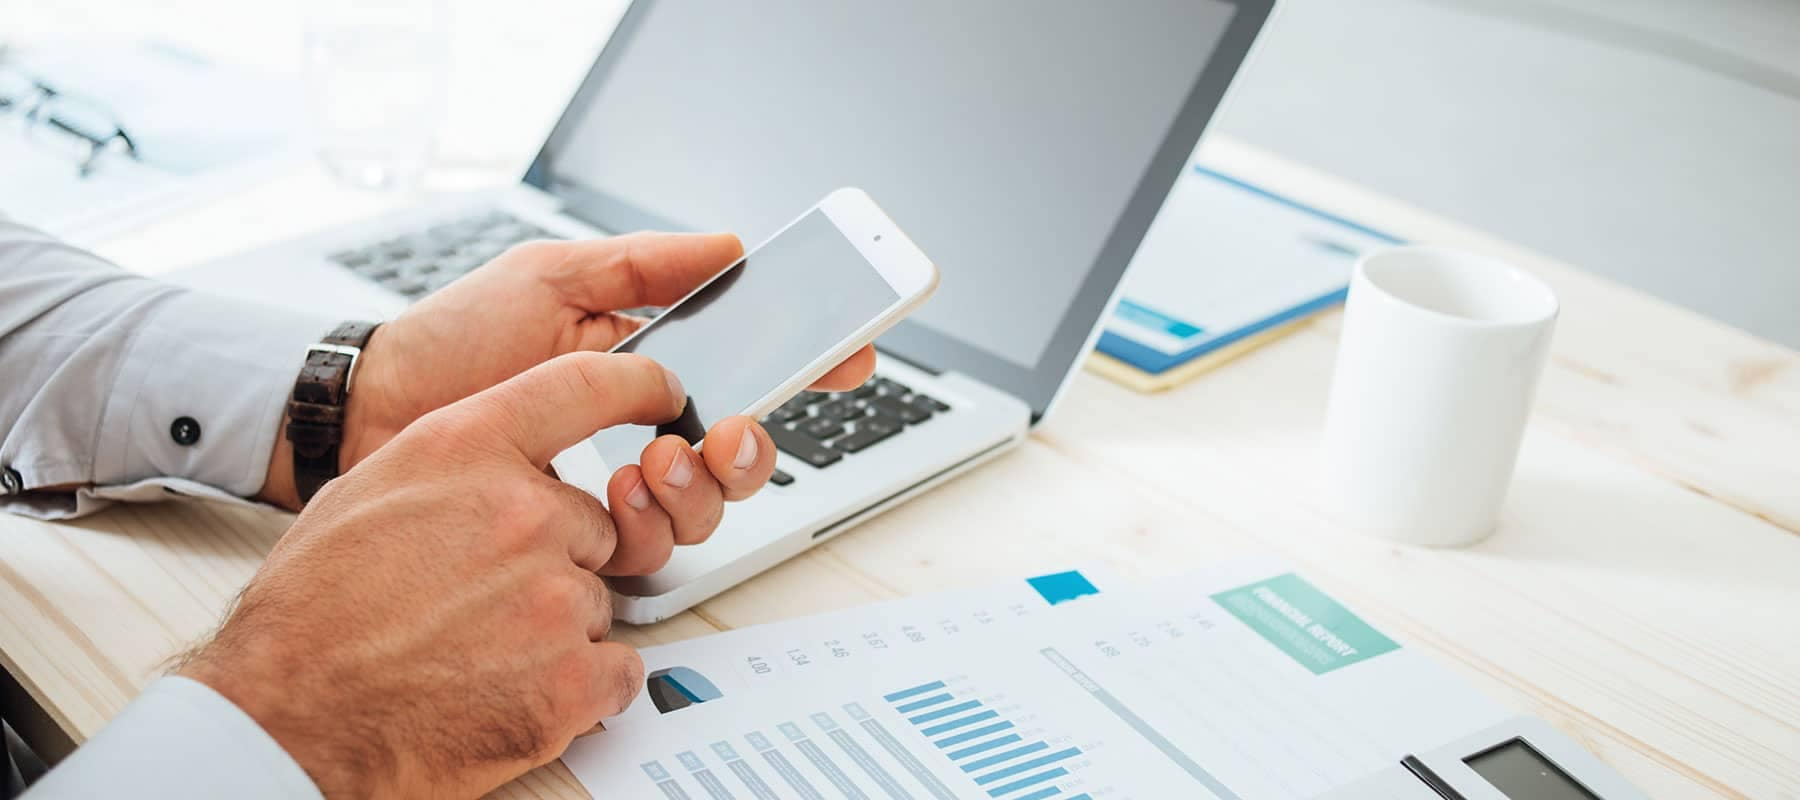 man uses smartphone and laptop to calculate his finances